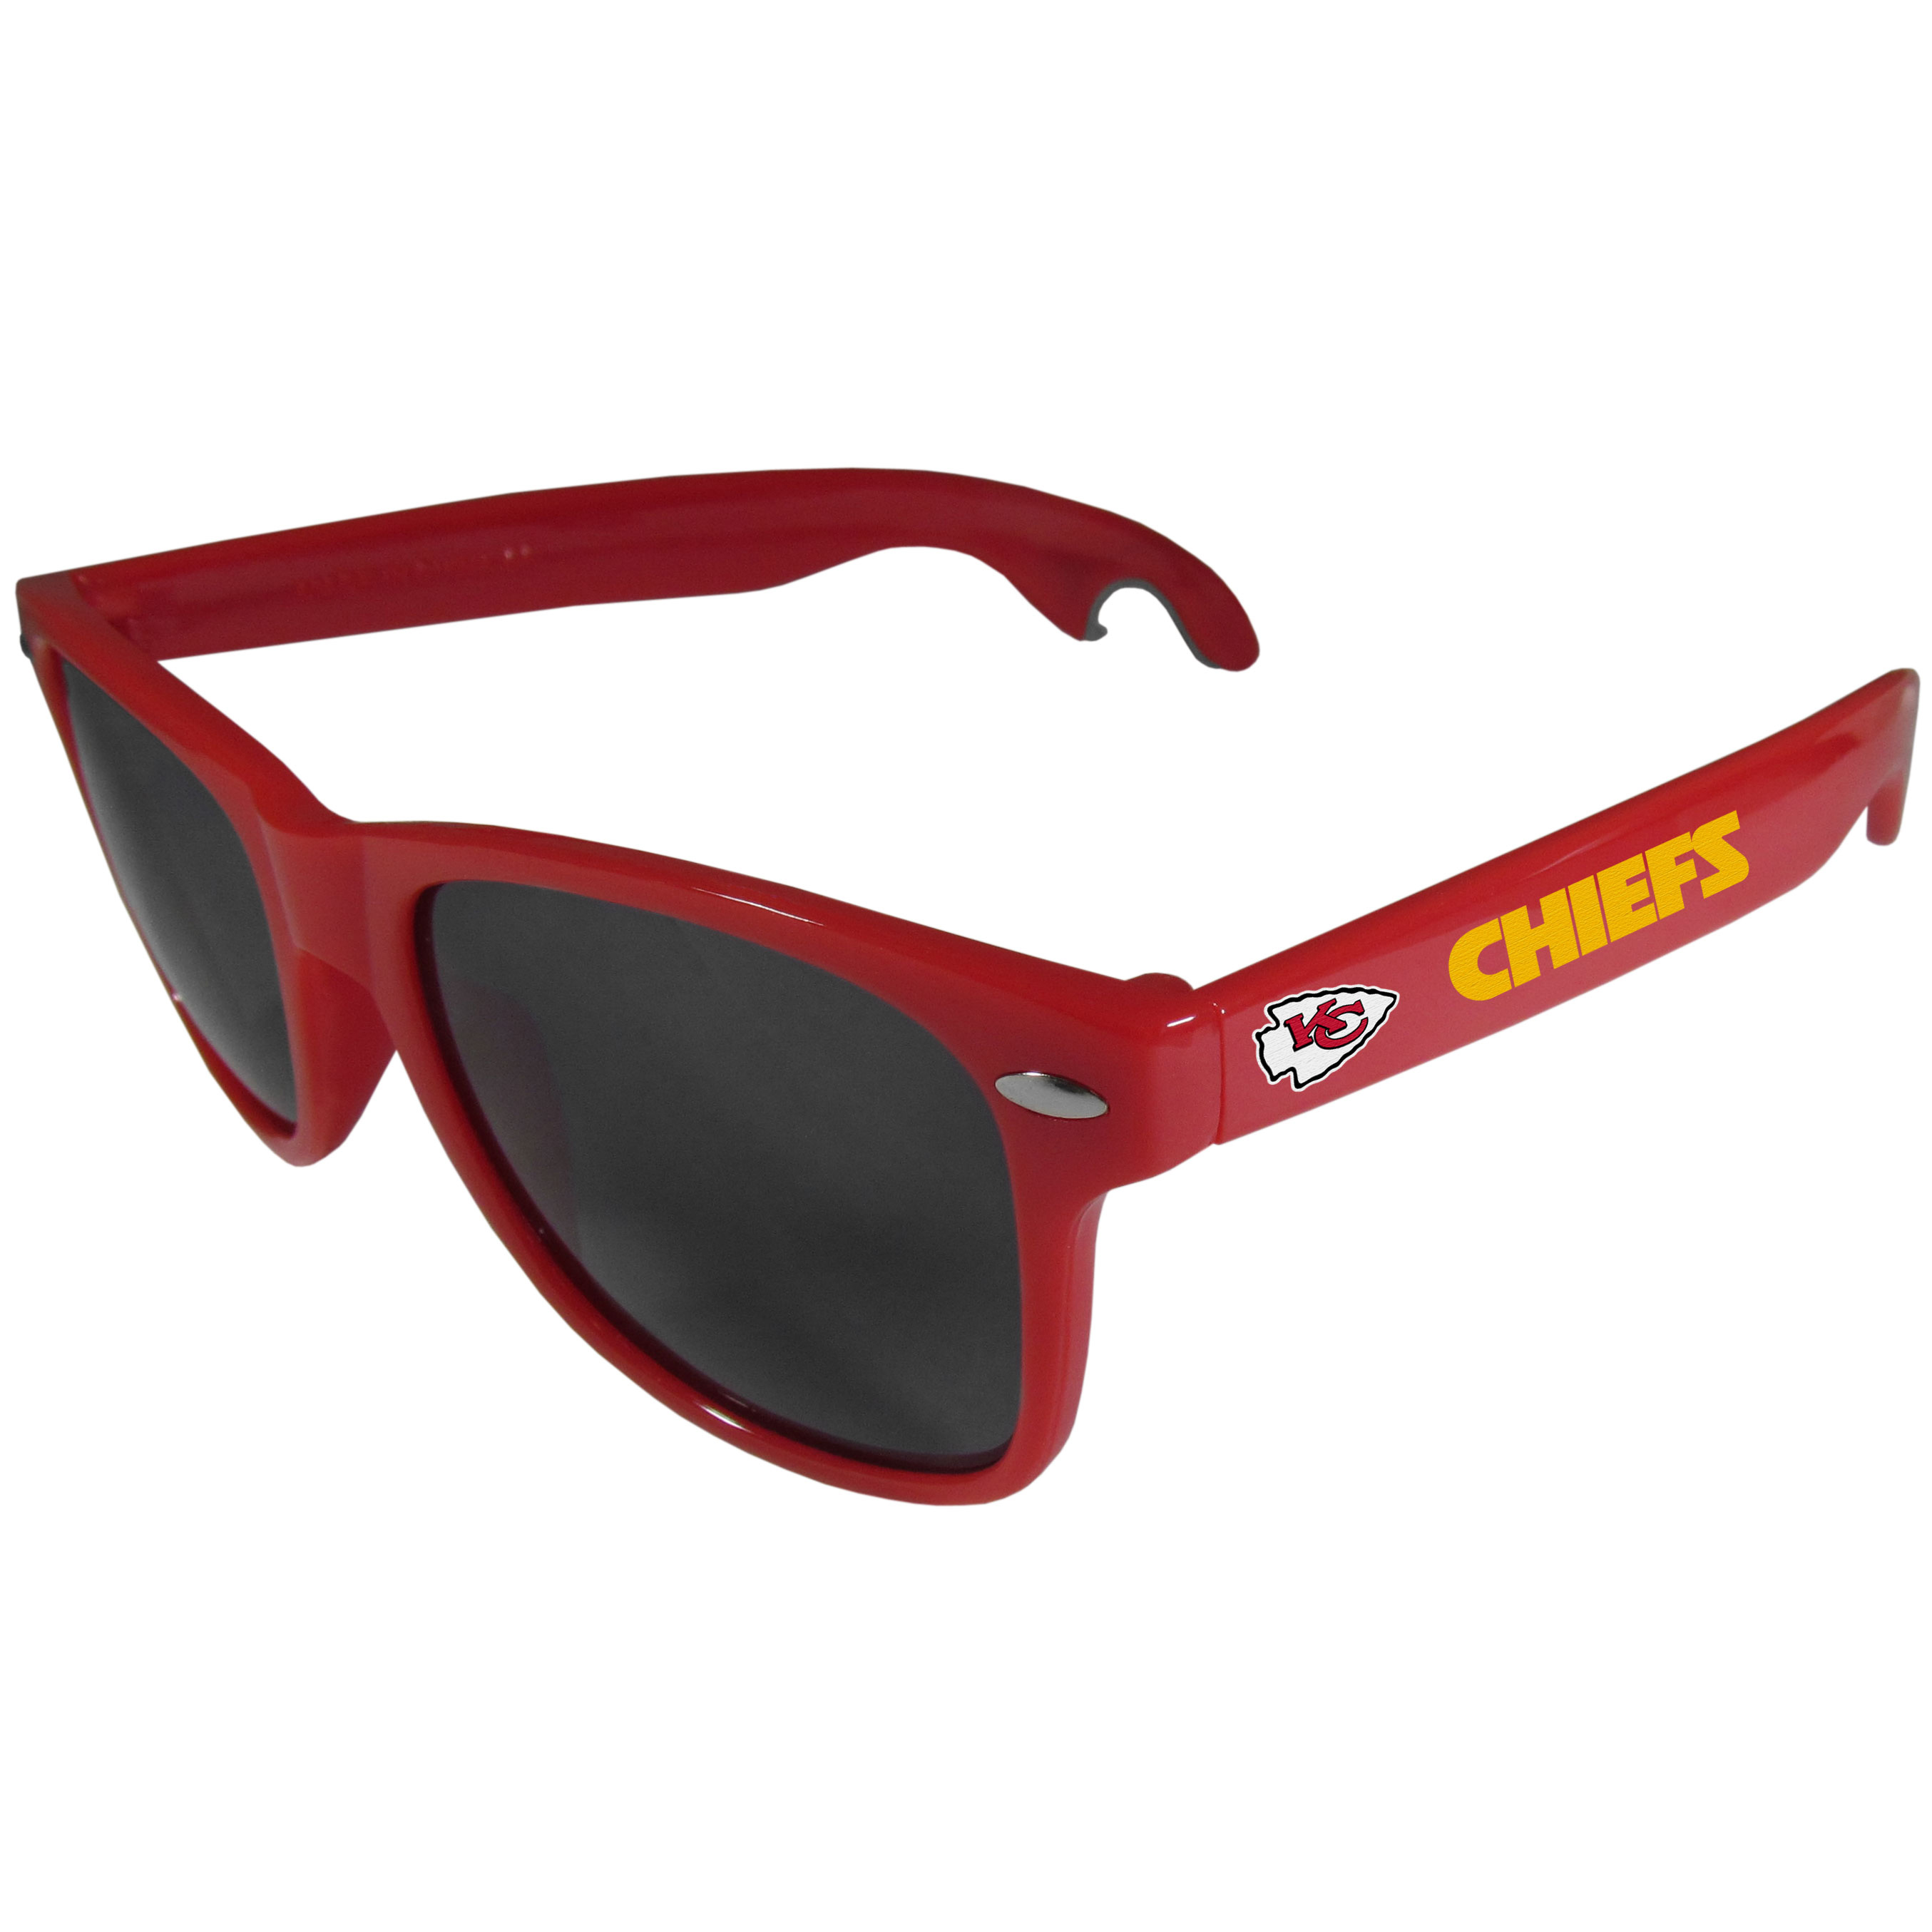 Kansas City Chiefs Beachfarer Bottle Opener Sunglasses, Red - Seriously, these sunglasses open bottles! Keep the party going with these amazing Kansas City Chiefs bottle opener sunglasses. The stylish retro frames feature team designs on the arms and functional bottle openers on the end of the arms. Whether you are at the beach or having a backyard BBQ on game day, these shades will keep your eyes protected with 100% UVA/UVB protection and keep you hydrated with the handy bottle opener arms.